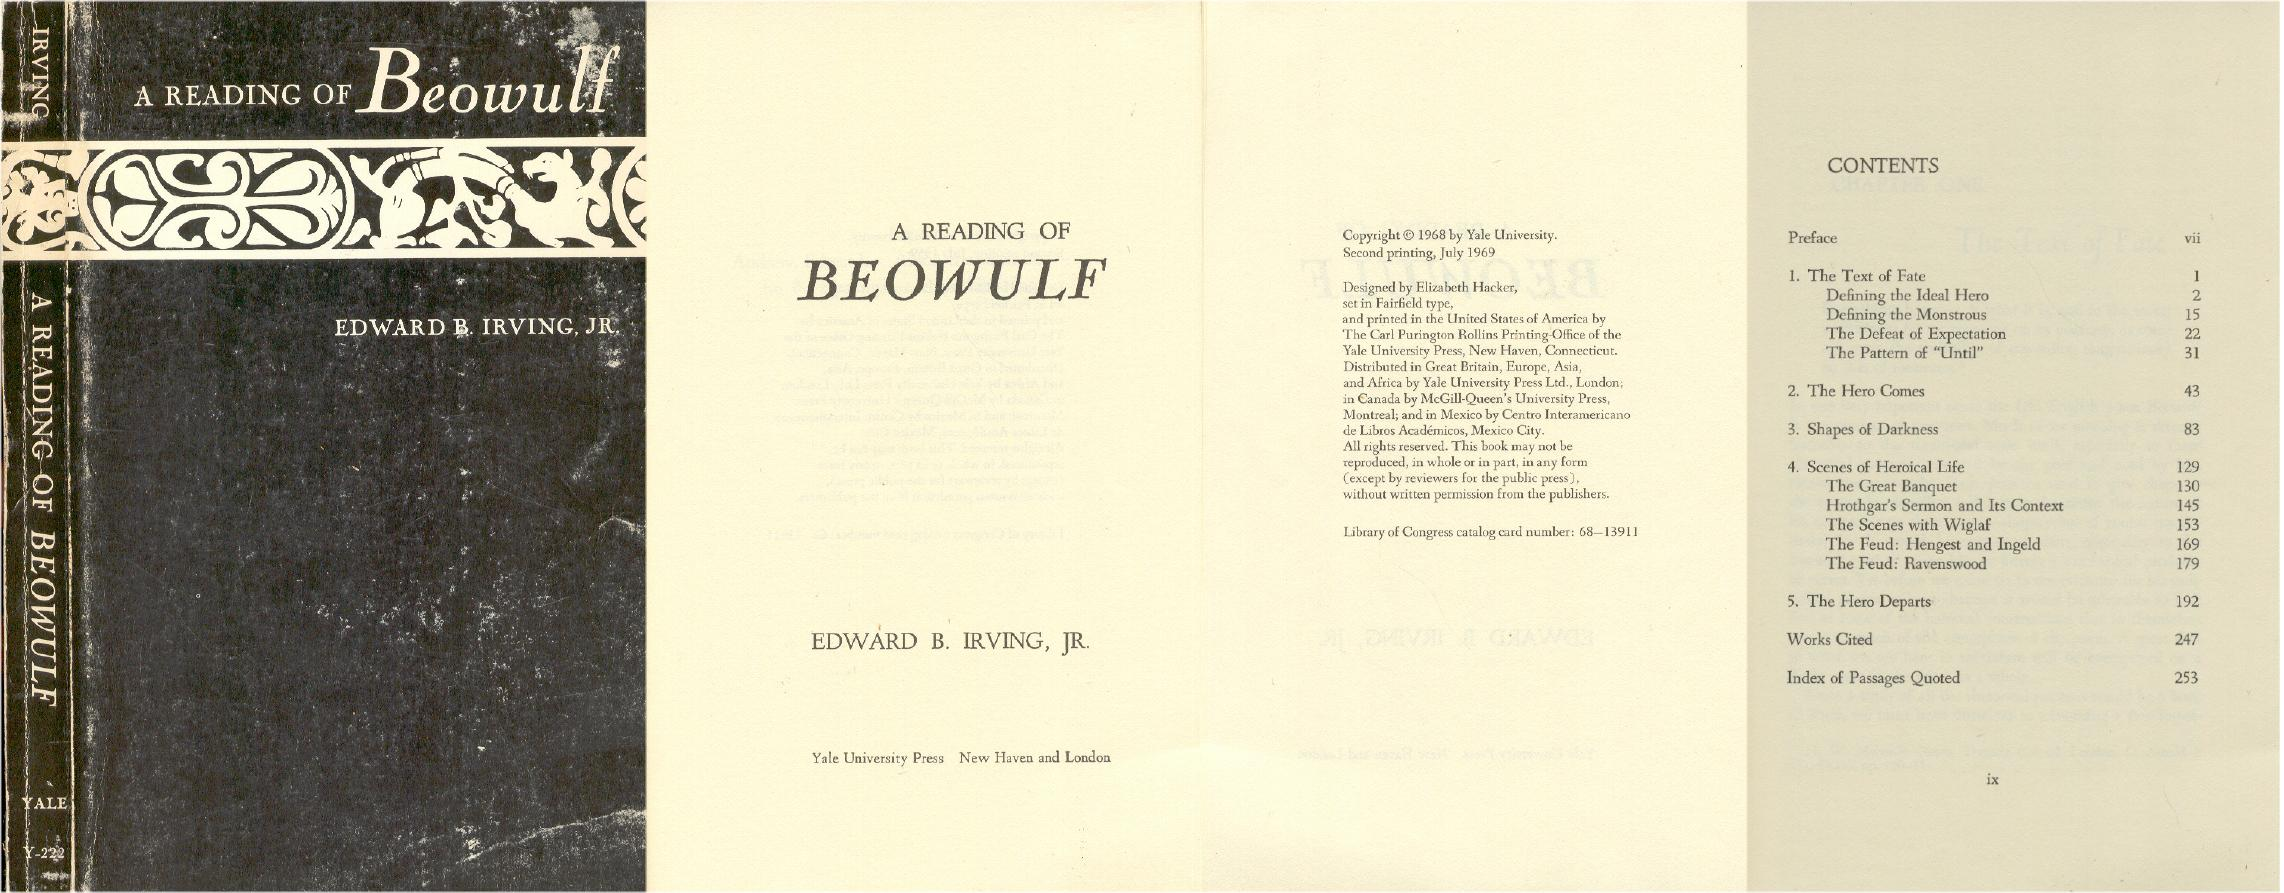 a comparison of beowulf and j f kennedy as heroes This paper will compare and contrast the medieval germanic hero beowulf with  the classical greek hero achilles (of homer's iliad), and show.